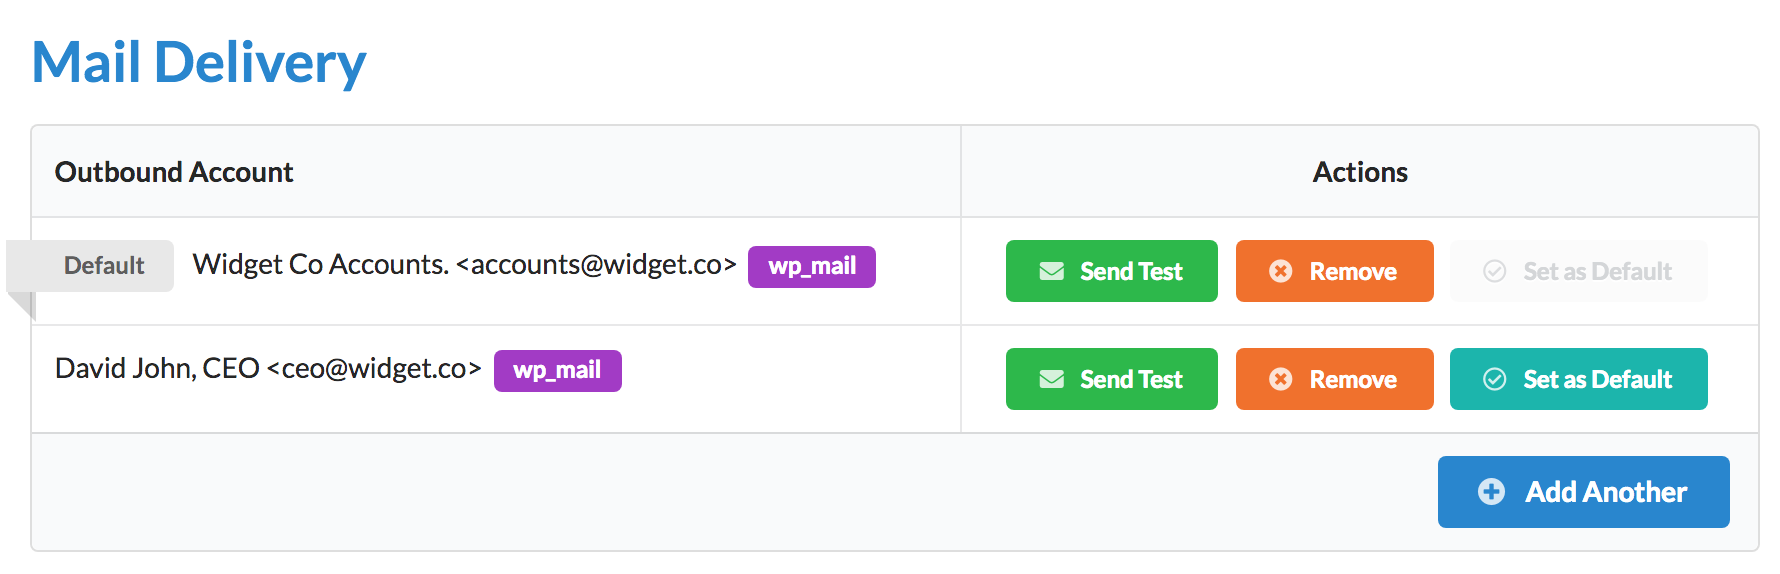 Zero BS CRM Mail Delivery List View - list your SMTP accounts setup in zbs